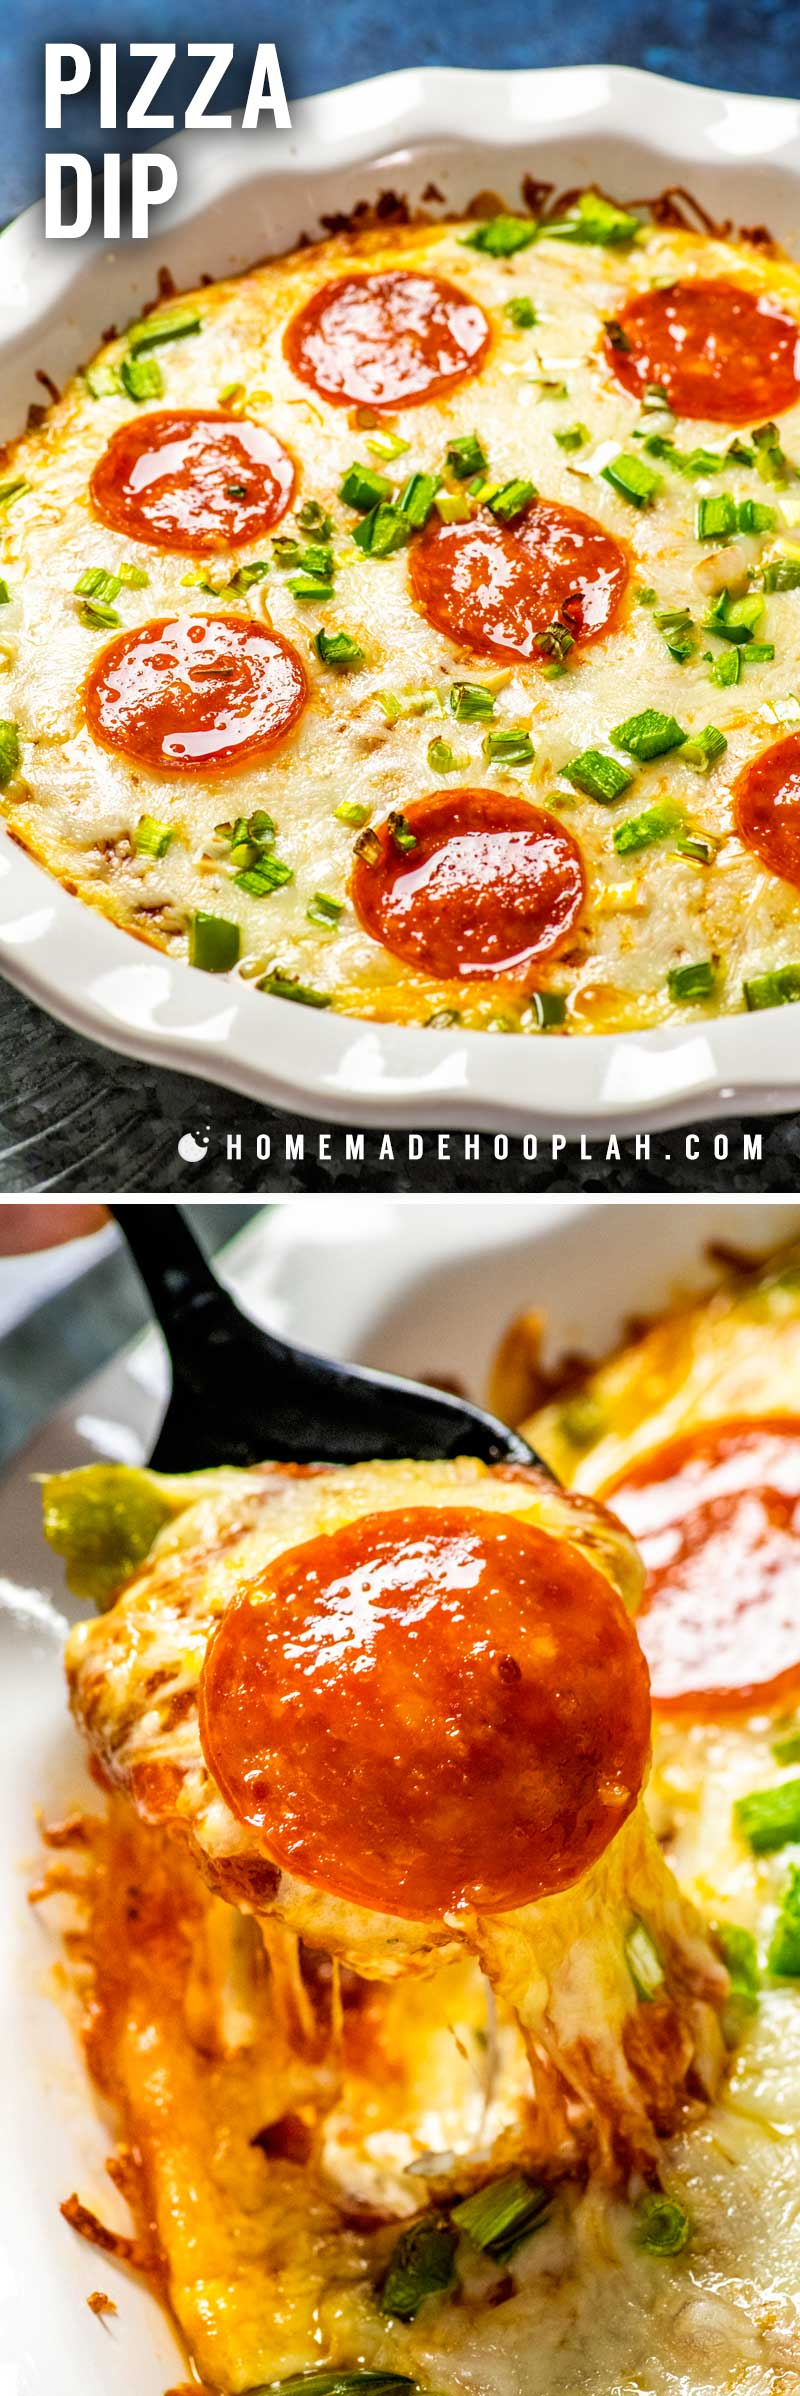 Pizza Dip! This easy pizza dip appetizer is the fun way to enjoy this party food classic. Ready faster than delivery and you can customize it with your favorite toppings! | HomemadeHooplah.com